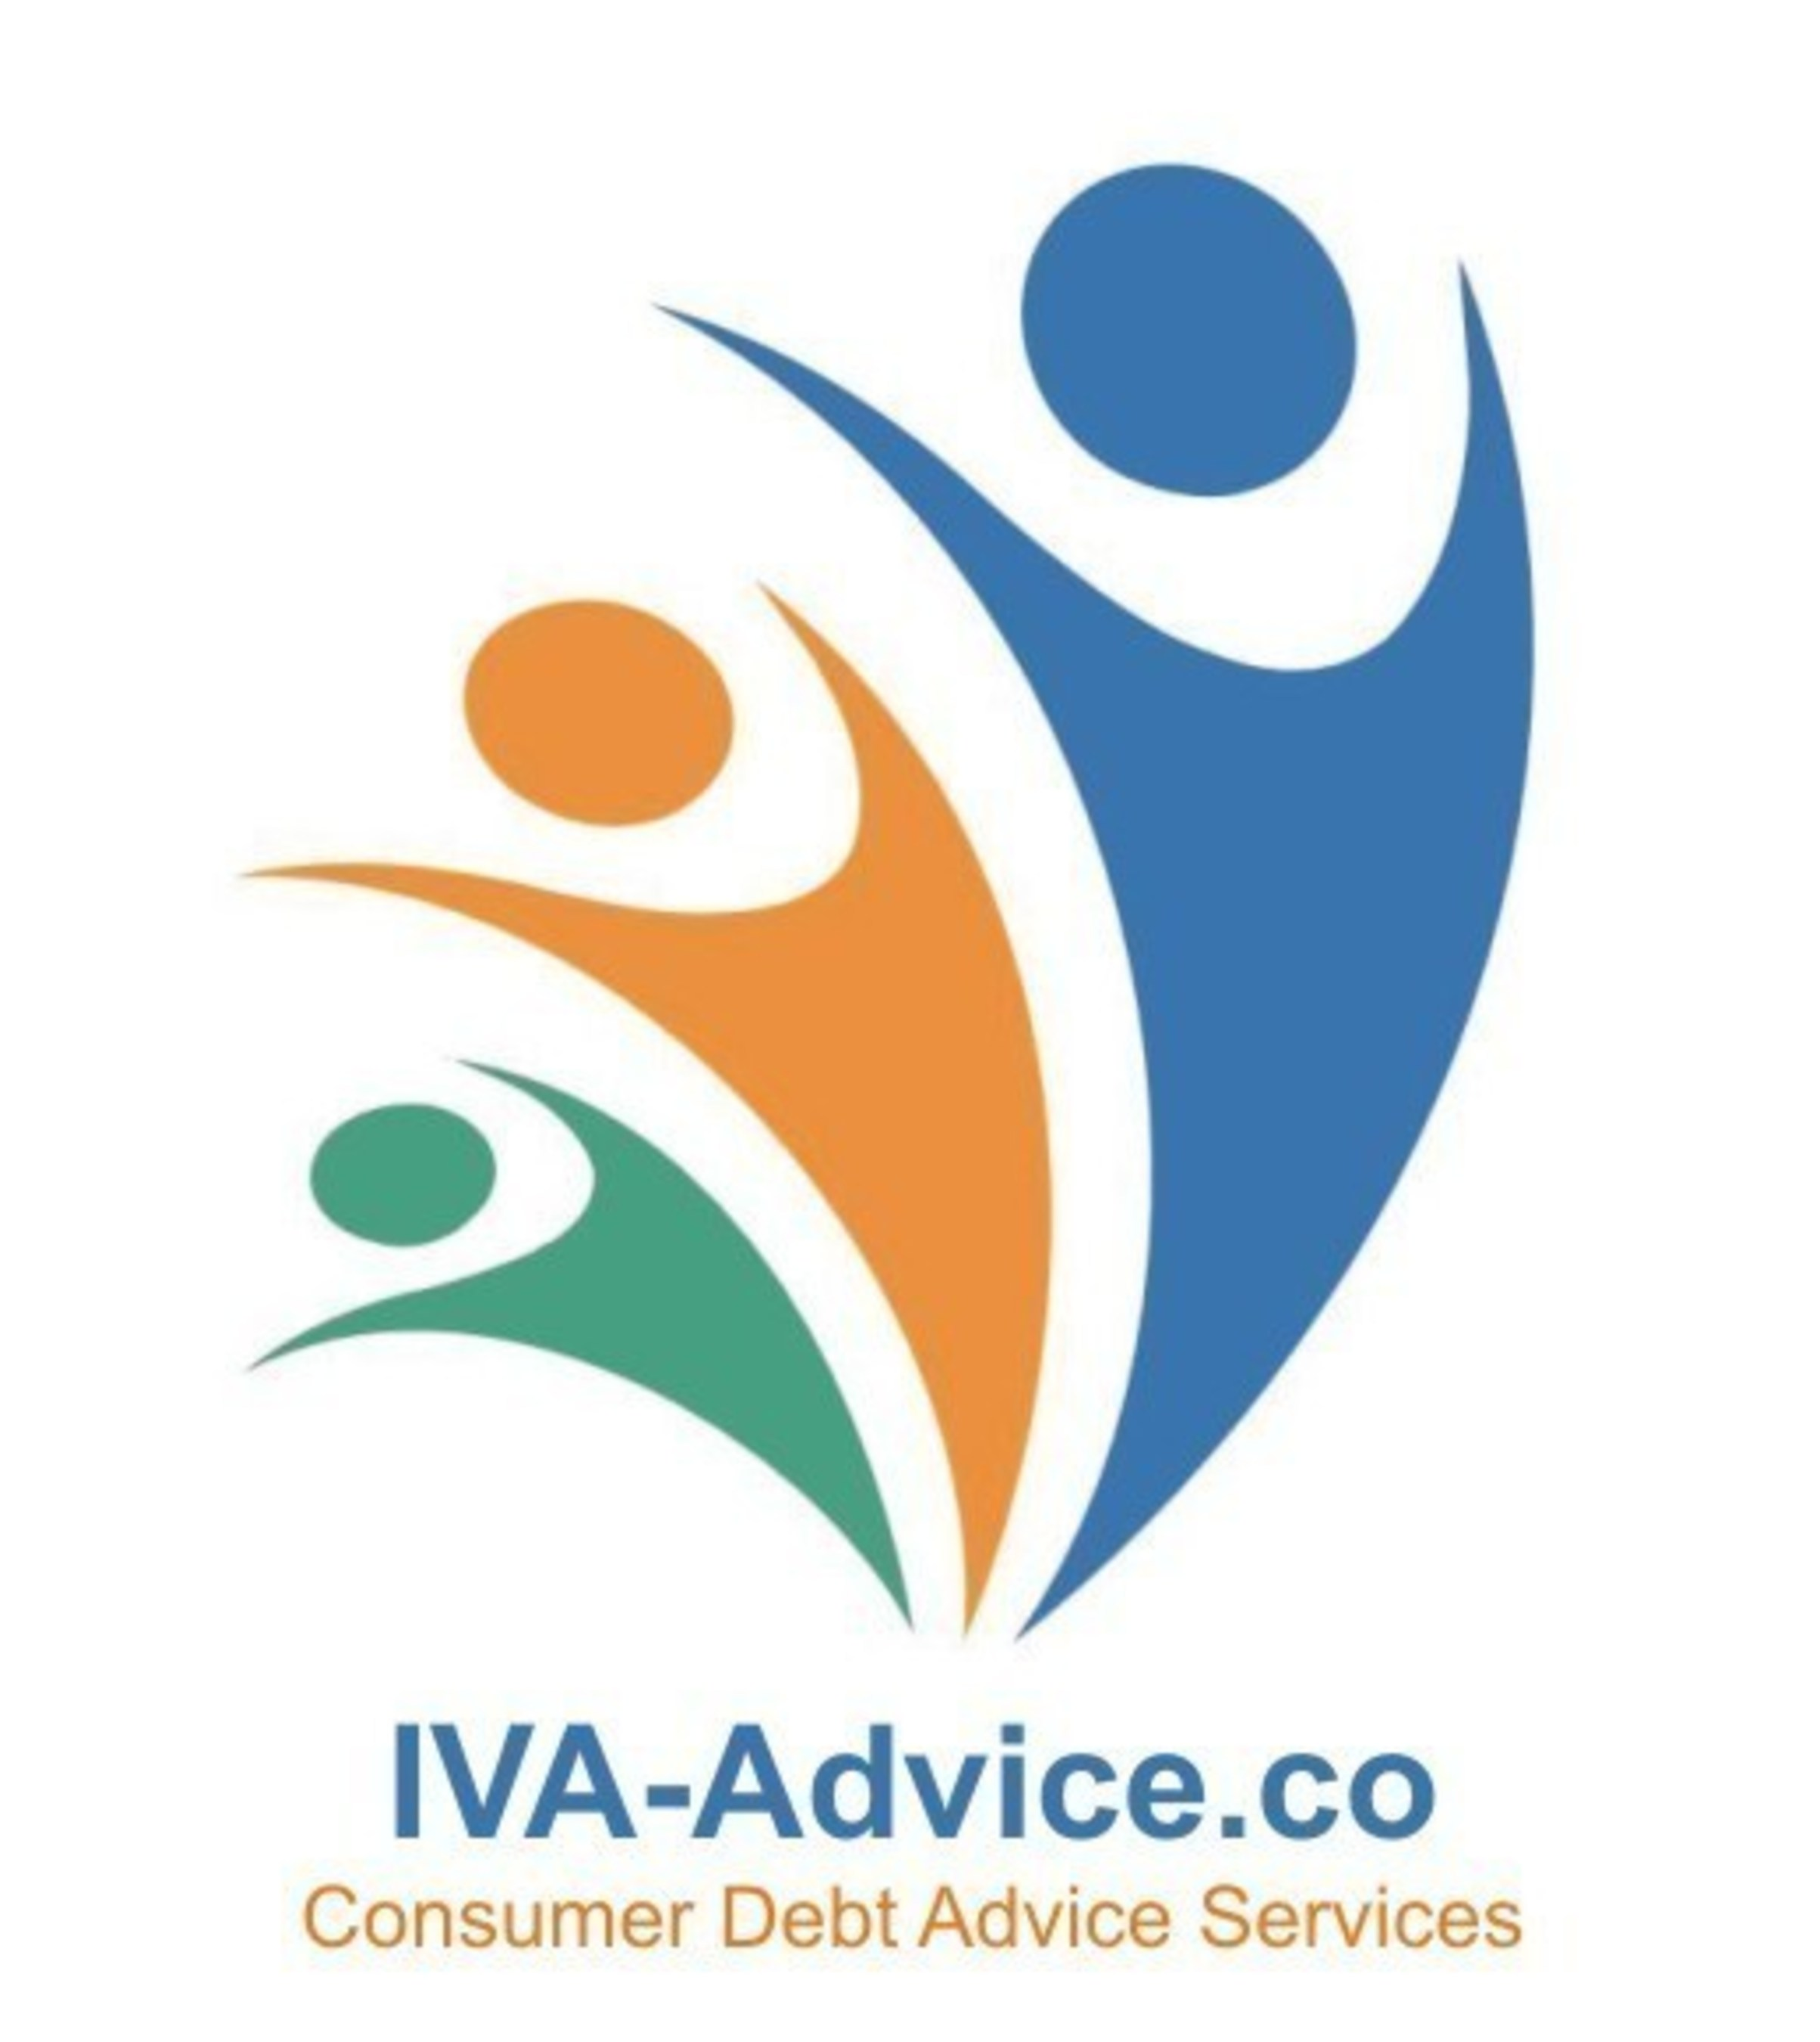 Debt Help Expert IVA-Advice.co Announces Full Accredited Member of the Debt Resolution Forum